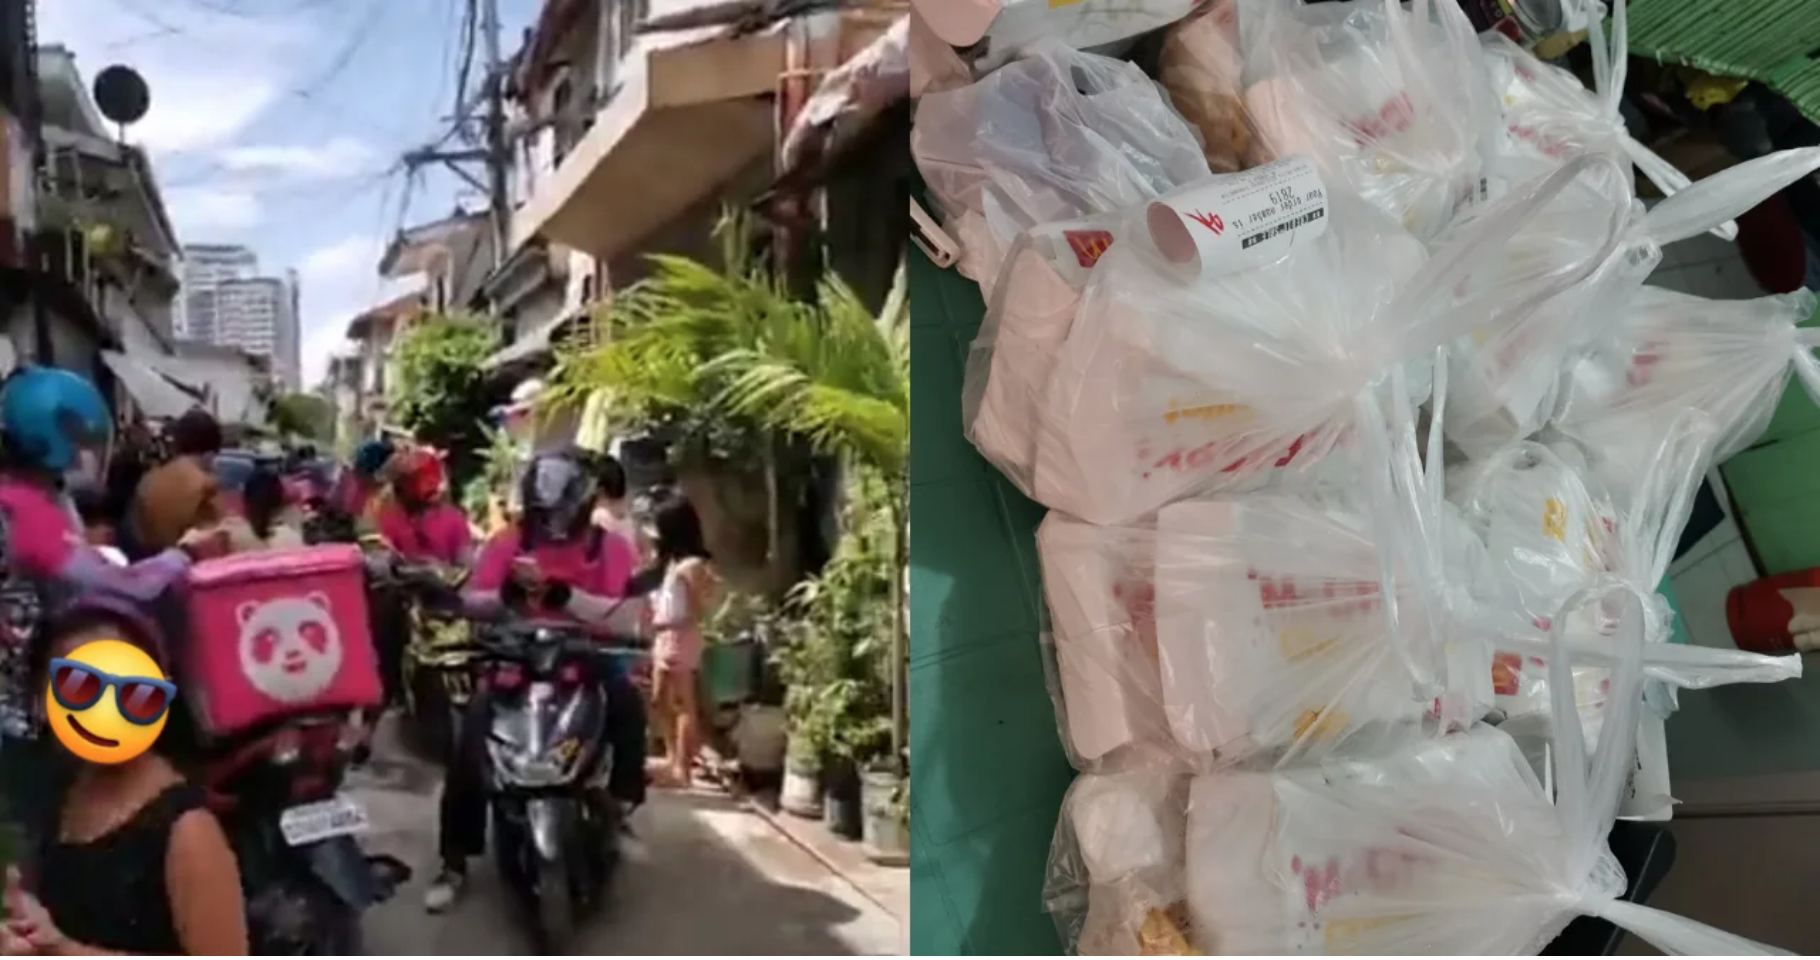 Filipino Woman Goes Viral After FOODPANDA Glitch Sends 42 Riders to Her Home